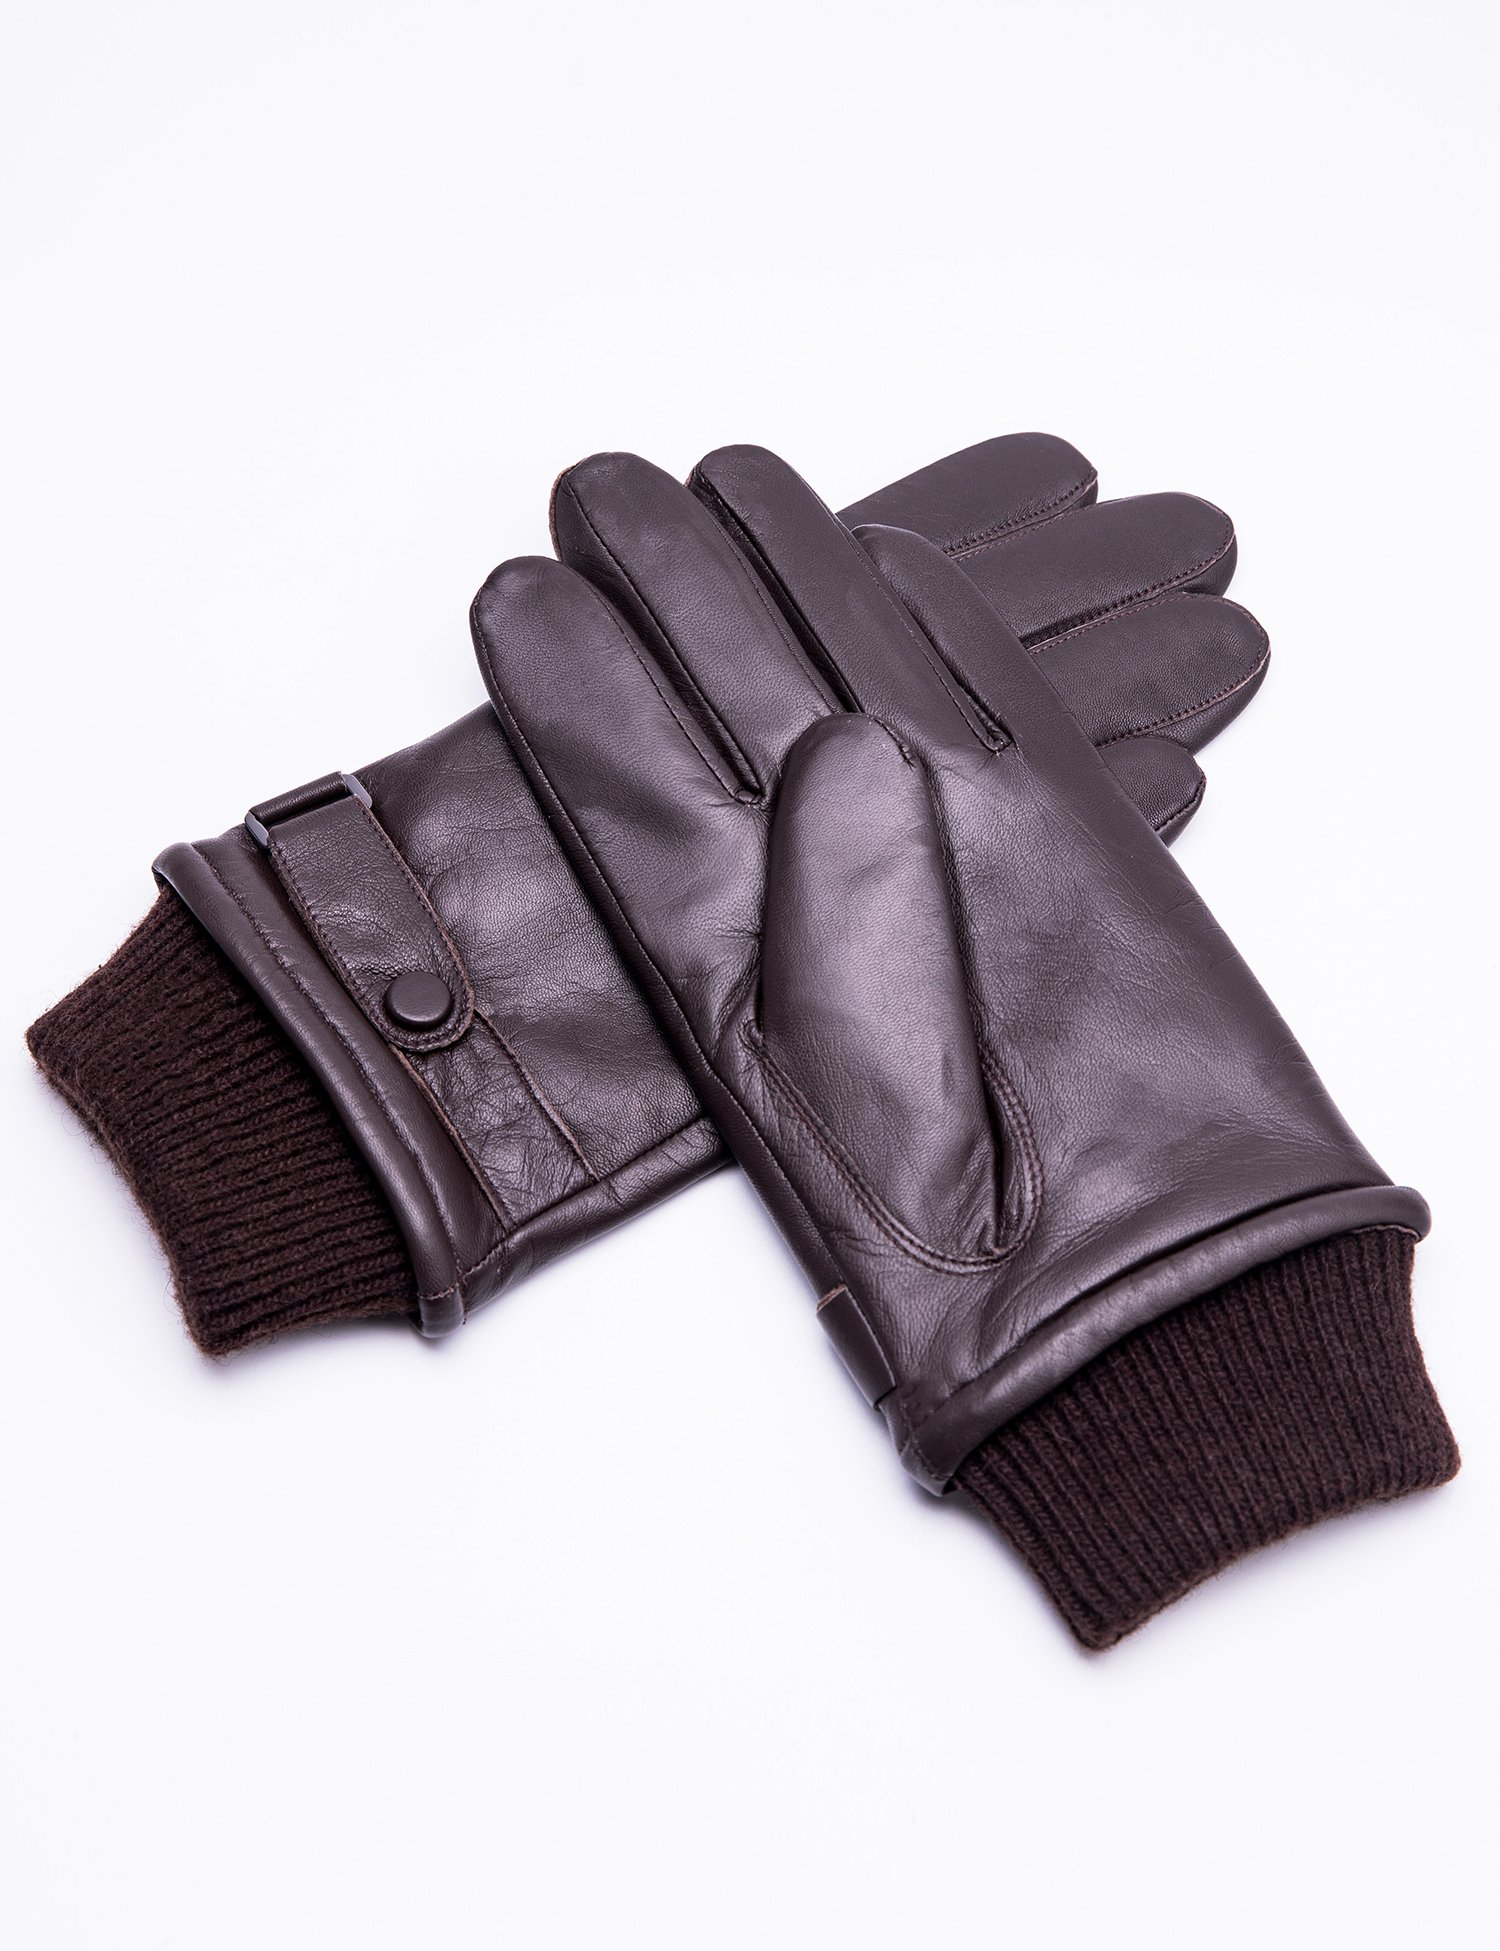 YISEVEN Men's Buttery-Soft Lambskin Leather Gloves Fleece Lined Spring Winter Hand Warm Fur Heated Lining Dress and Motorcycle Driving Real Luxury Stylish Holiday Xmas Gift, Brown 9.5''/L